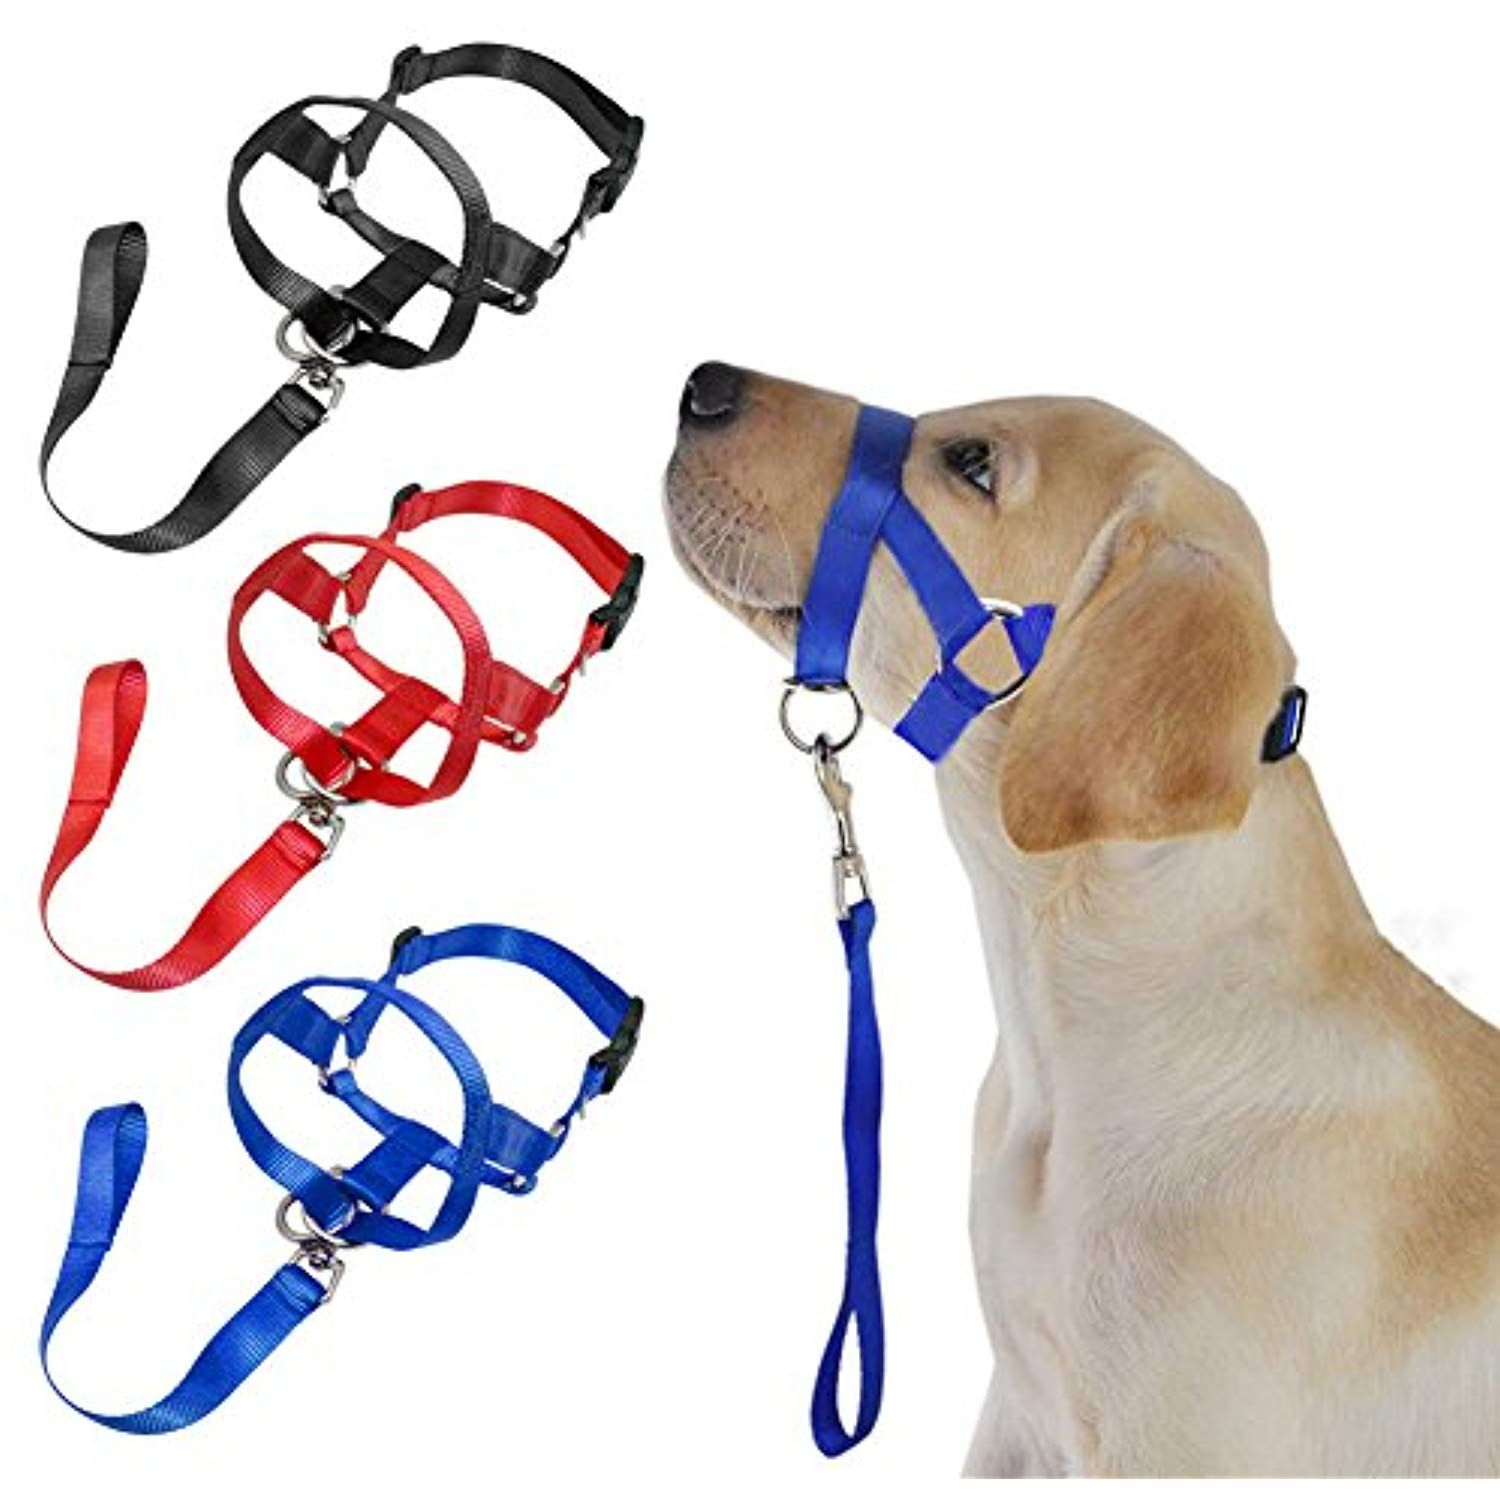 Head Collar Halter Dog Safety Muzzle Puppy Mouth Control Pet Accessories